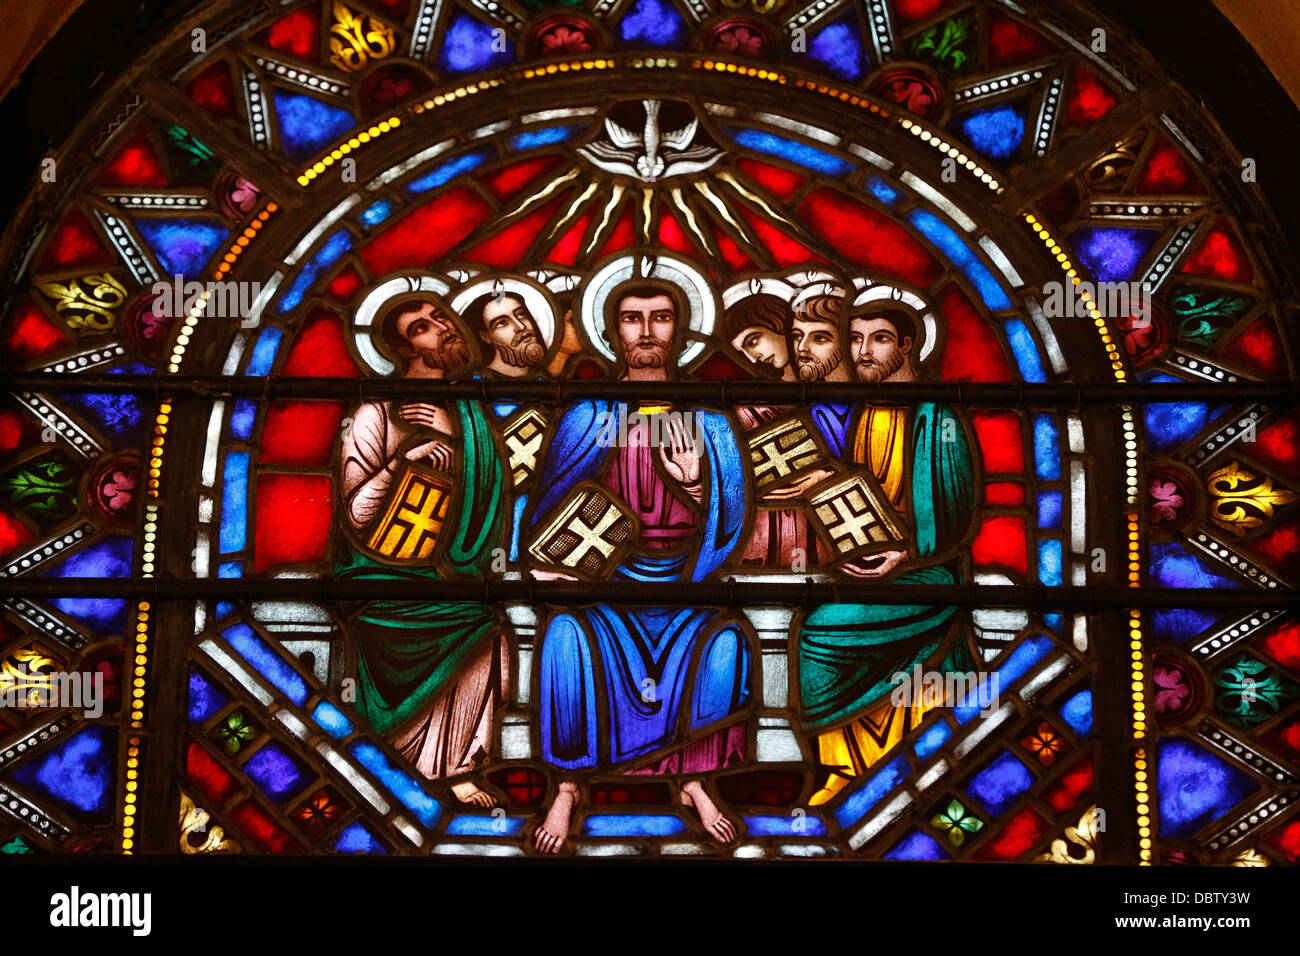 Stained Glass Window Of Jesus And The 12 Apostles St Barths Church New York United States America North